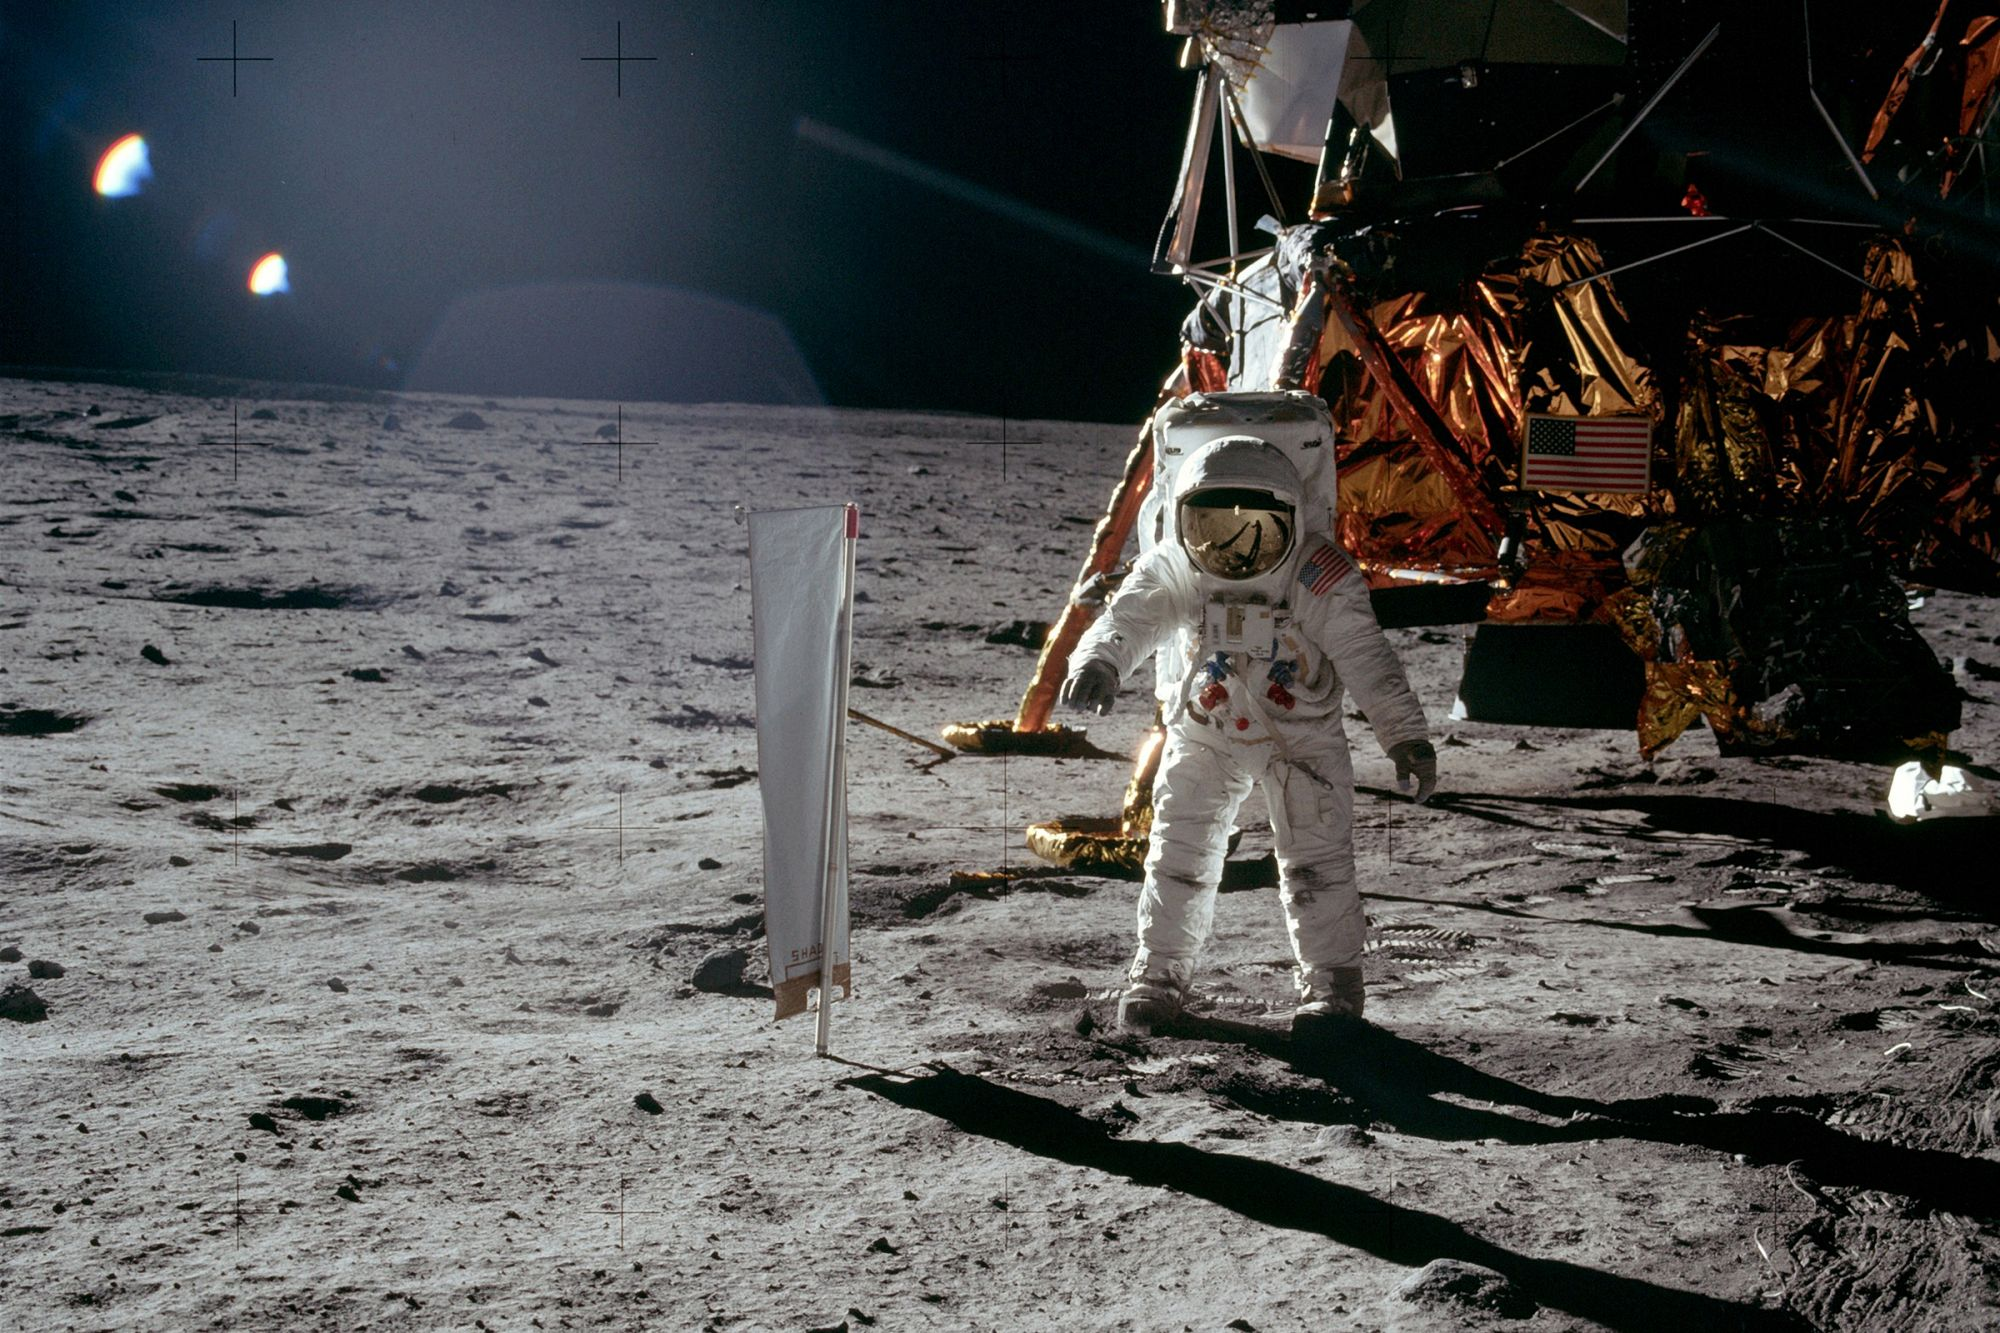 Attempting the Impossible? Take These 3 Lessons From the Apollo Moon Landing